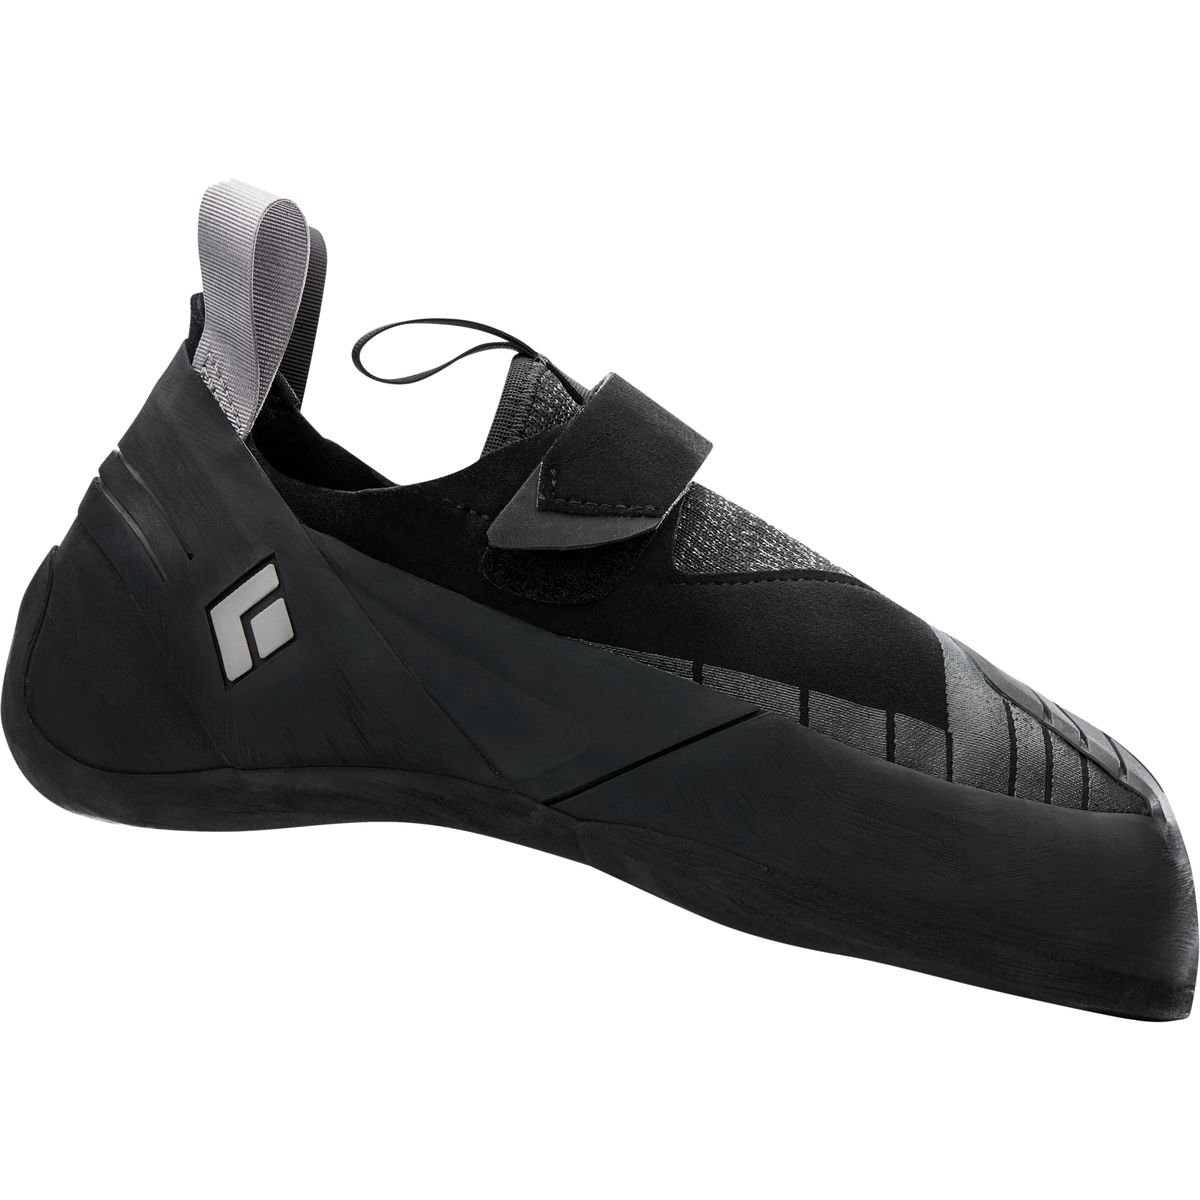 Black Diamond Shadow Climbing Shoes